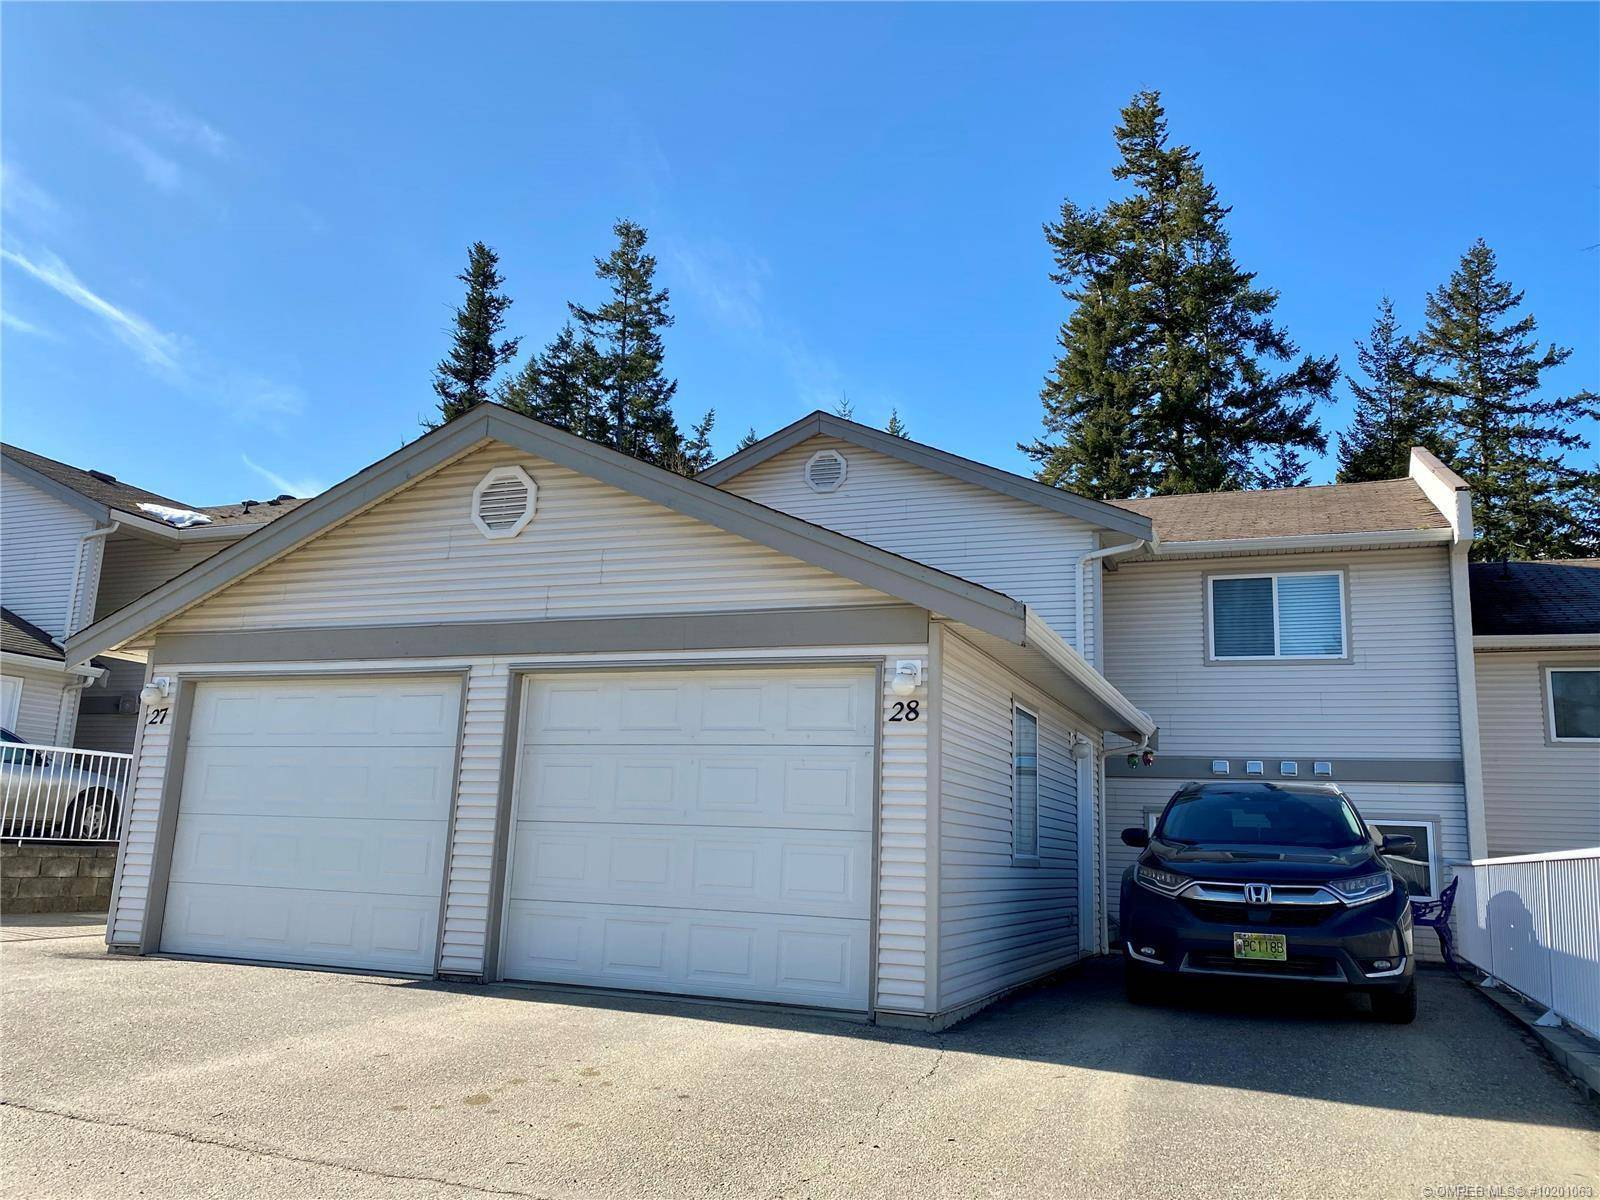 Townhouse for sale at 171 17 St Southeast Unit 28 Salmon Arm British Columbia - MLS: 10201063